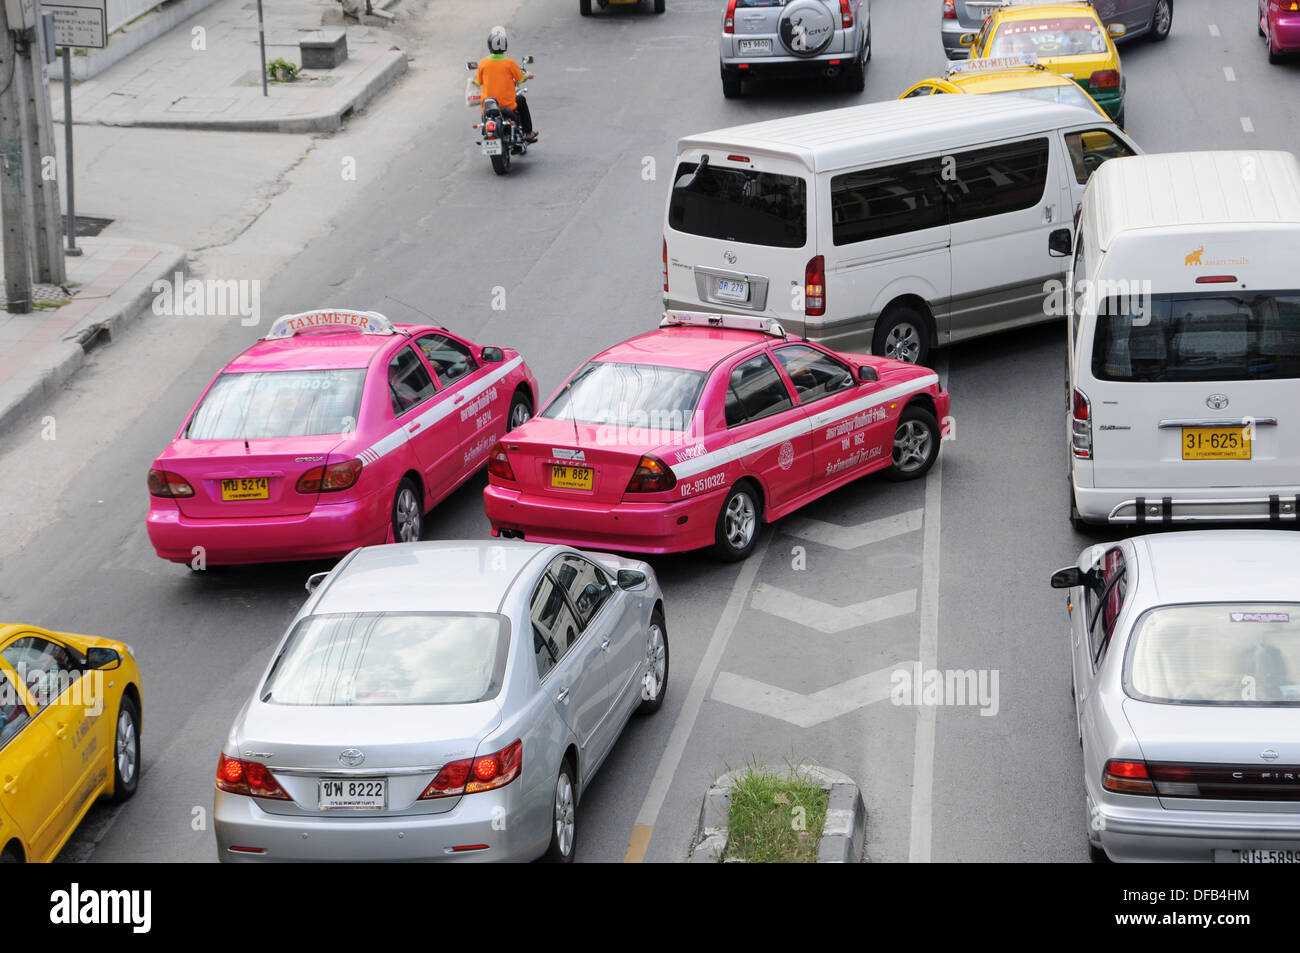 Cars when changing lanes in Bangkok Stock Photo: 61096048 - Alamy